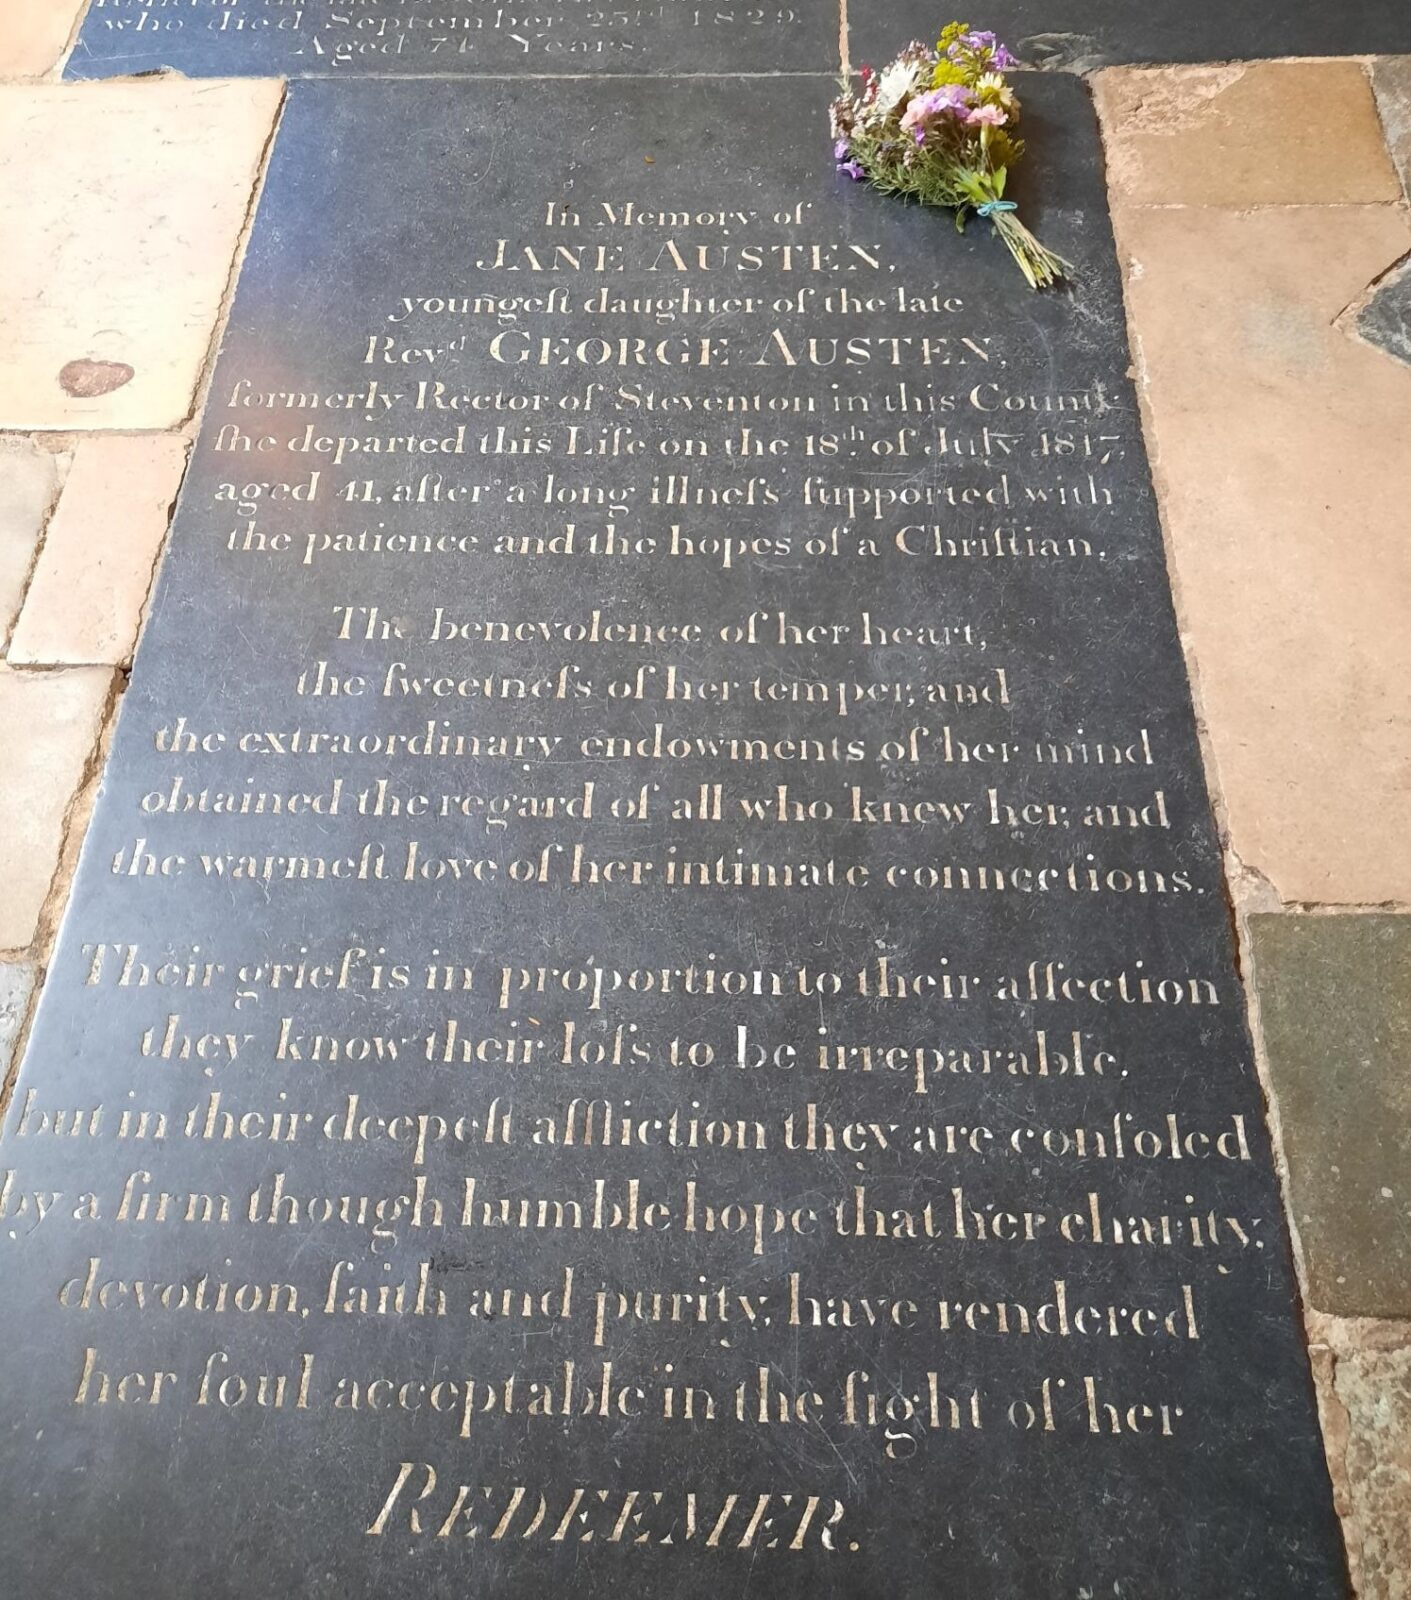 Jane Austen's gravestone in Winchester Cathedral, with a bunch of flowers laid on it